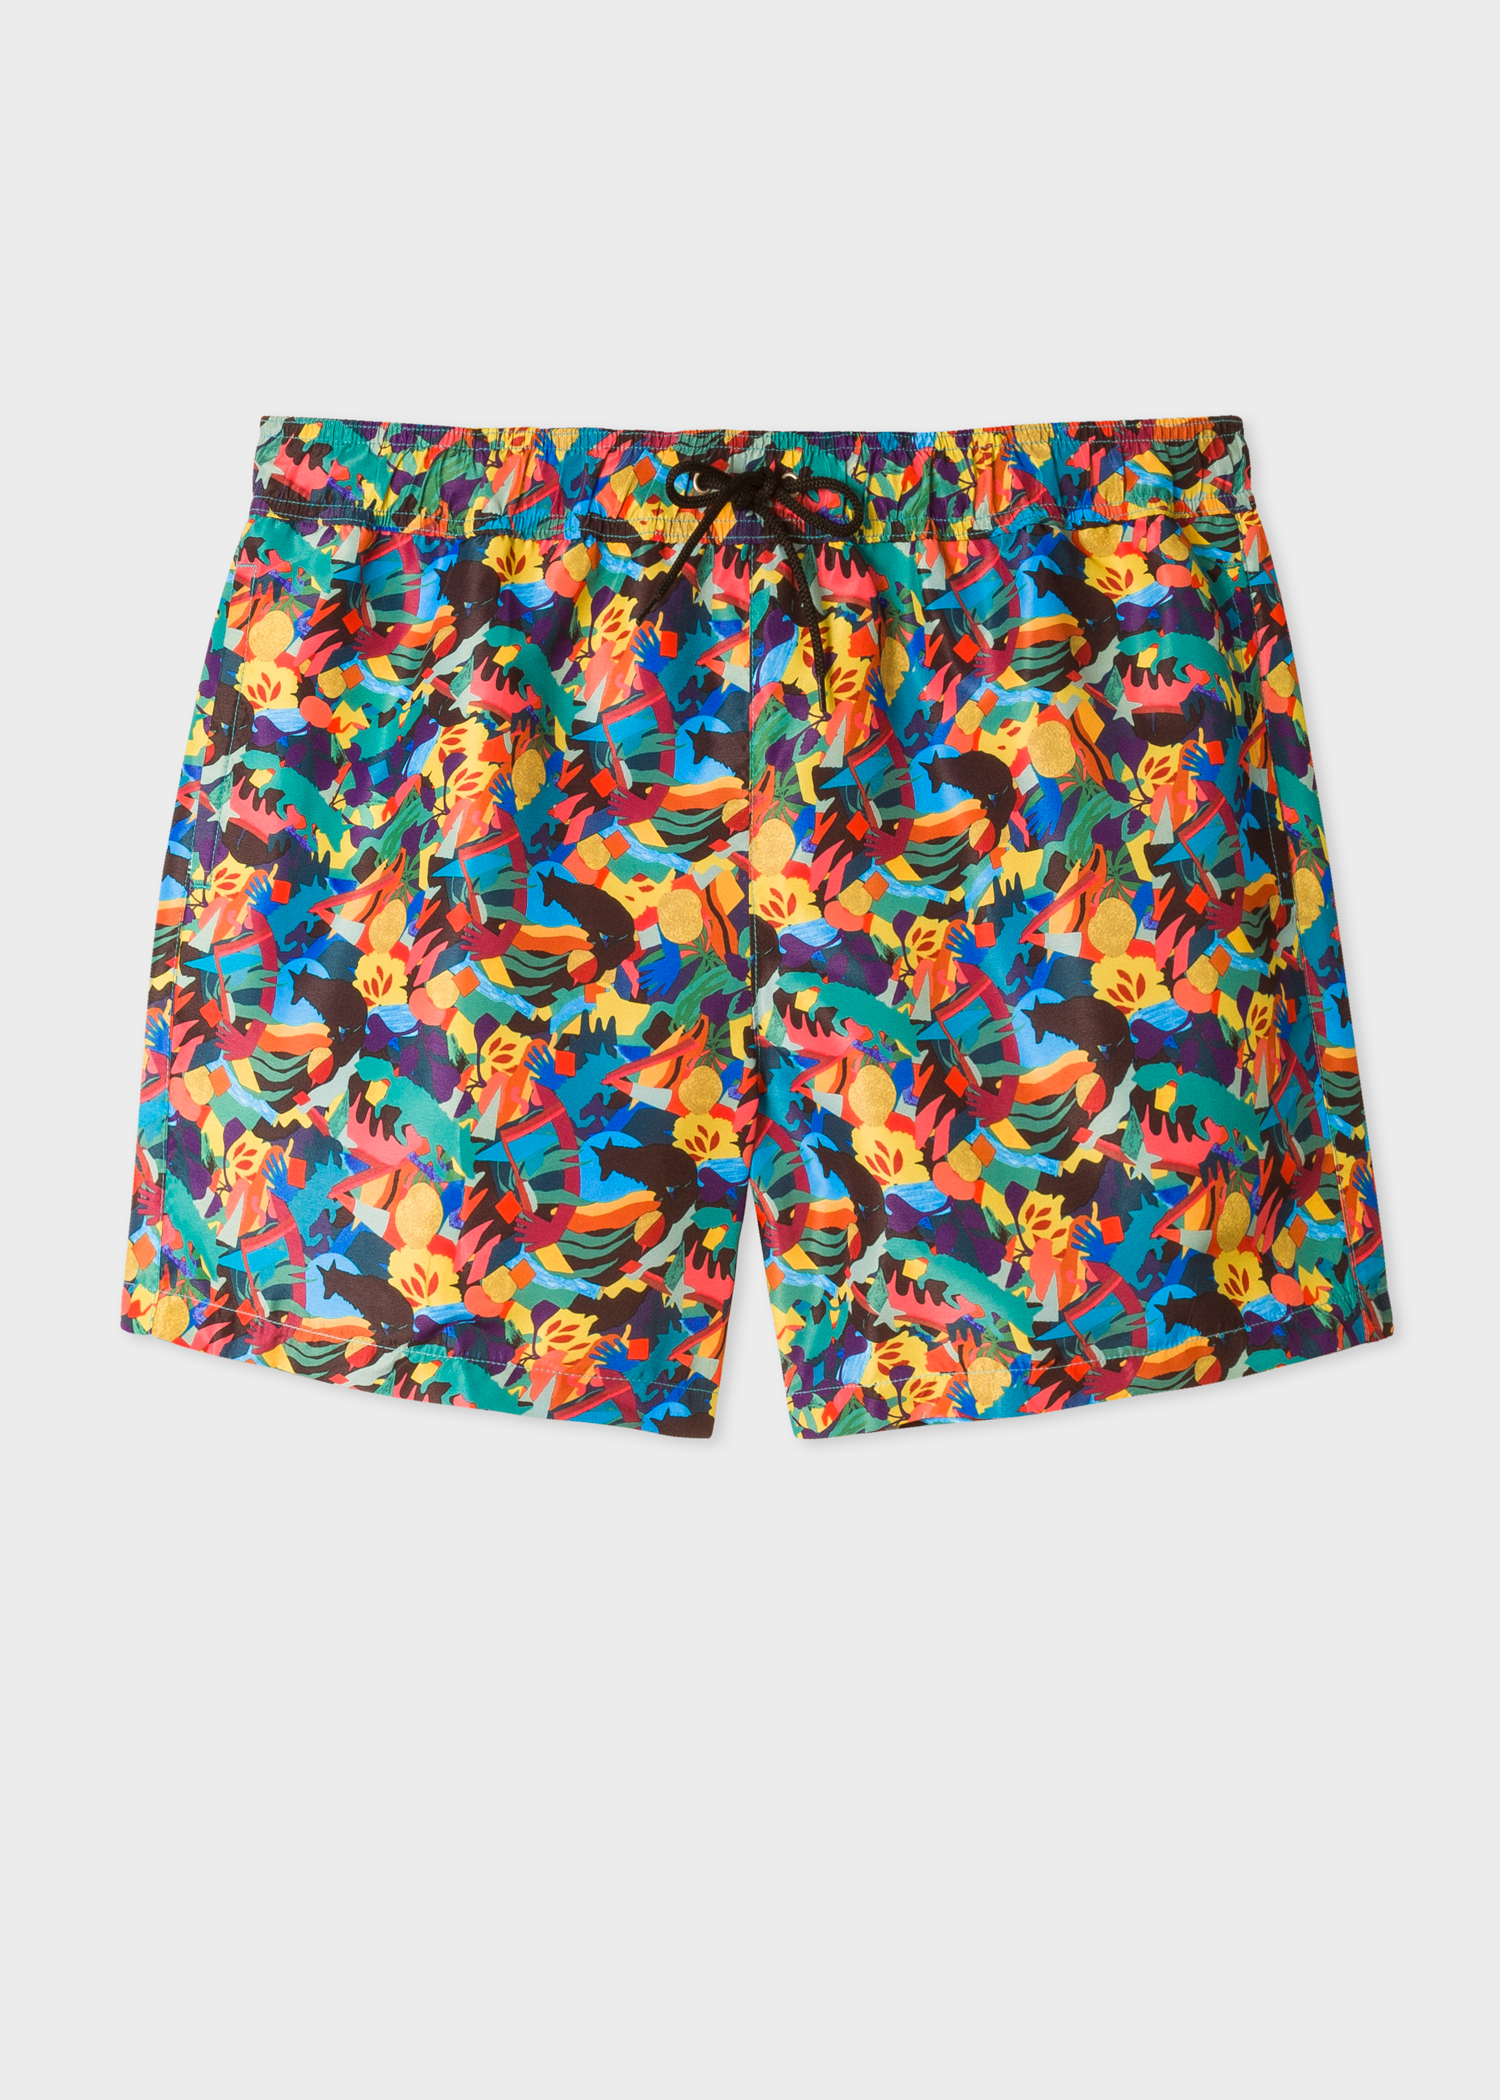 fc3bb7ba9a Front View - Men's Multi-coloured 'Urban Fox And Palm Tree' Print Swim